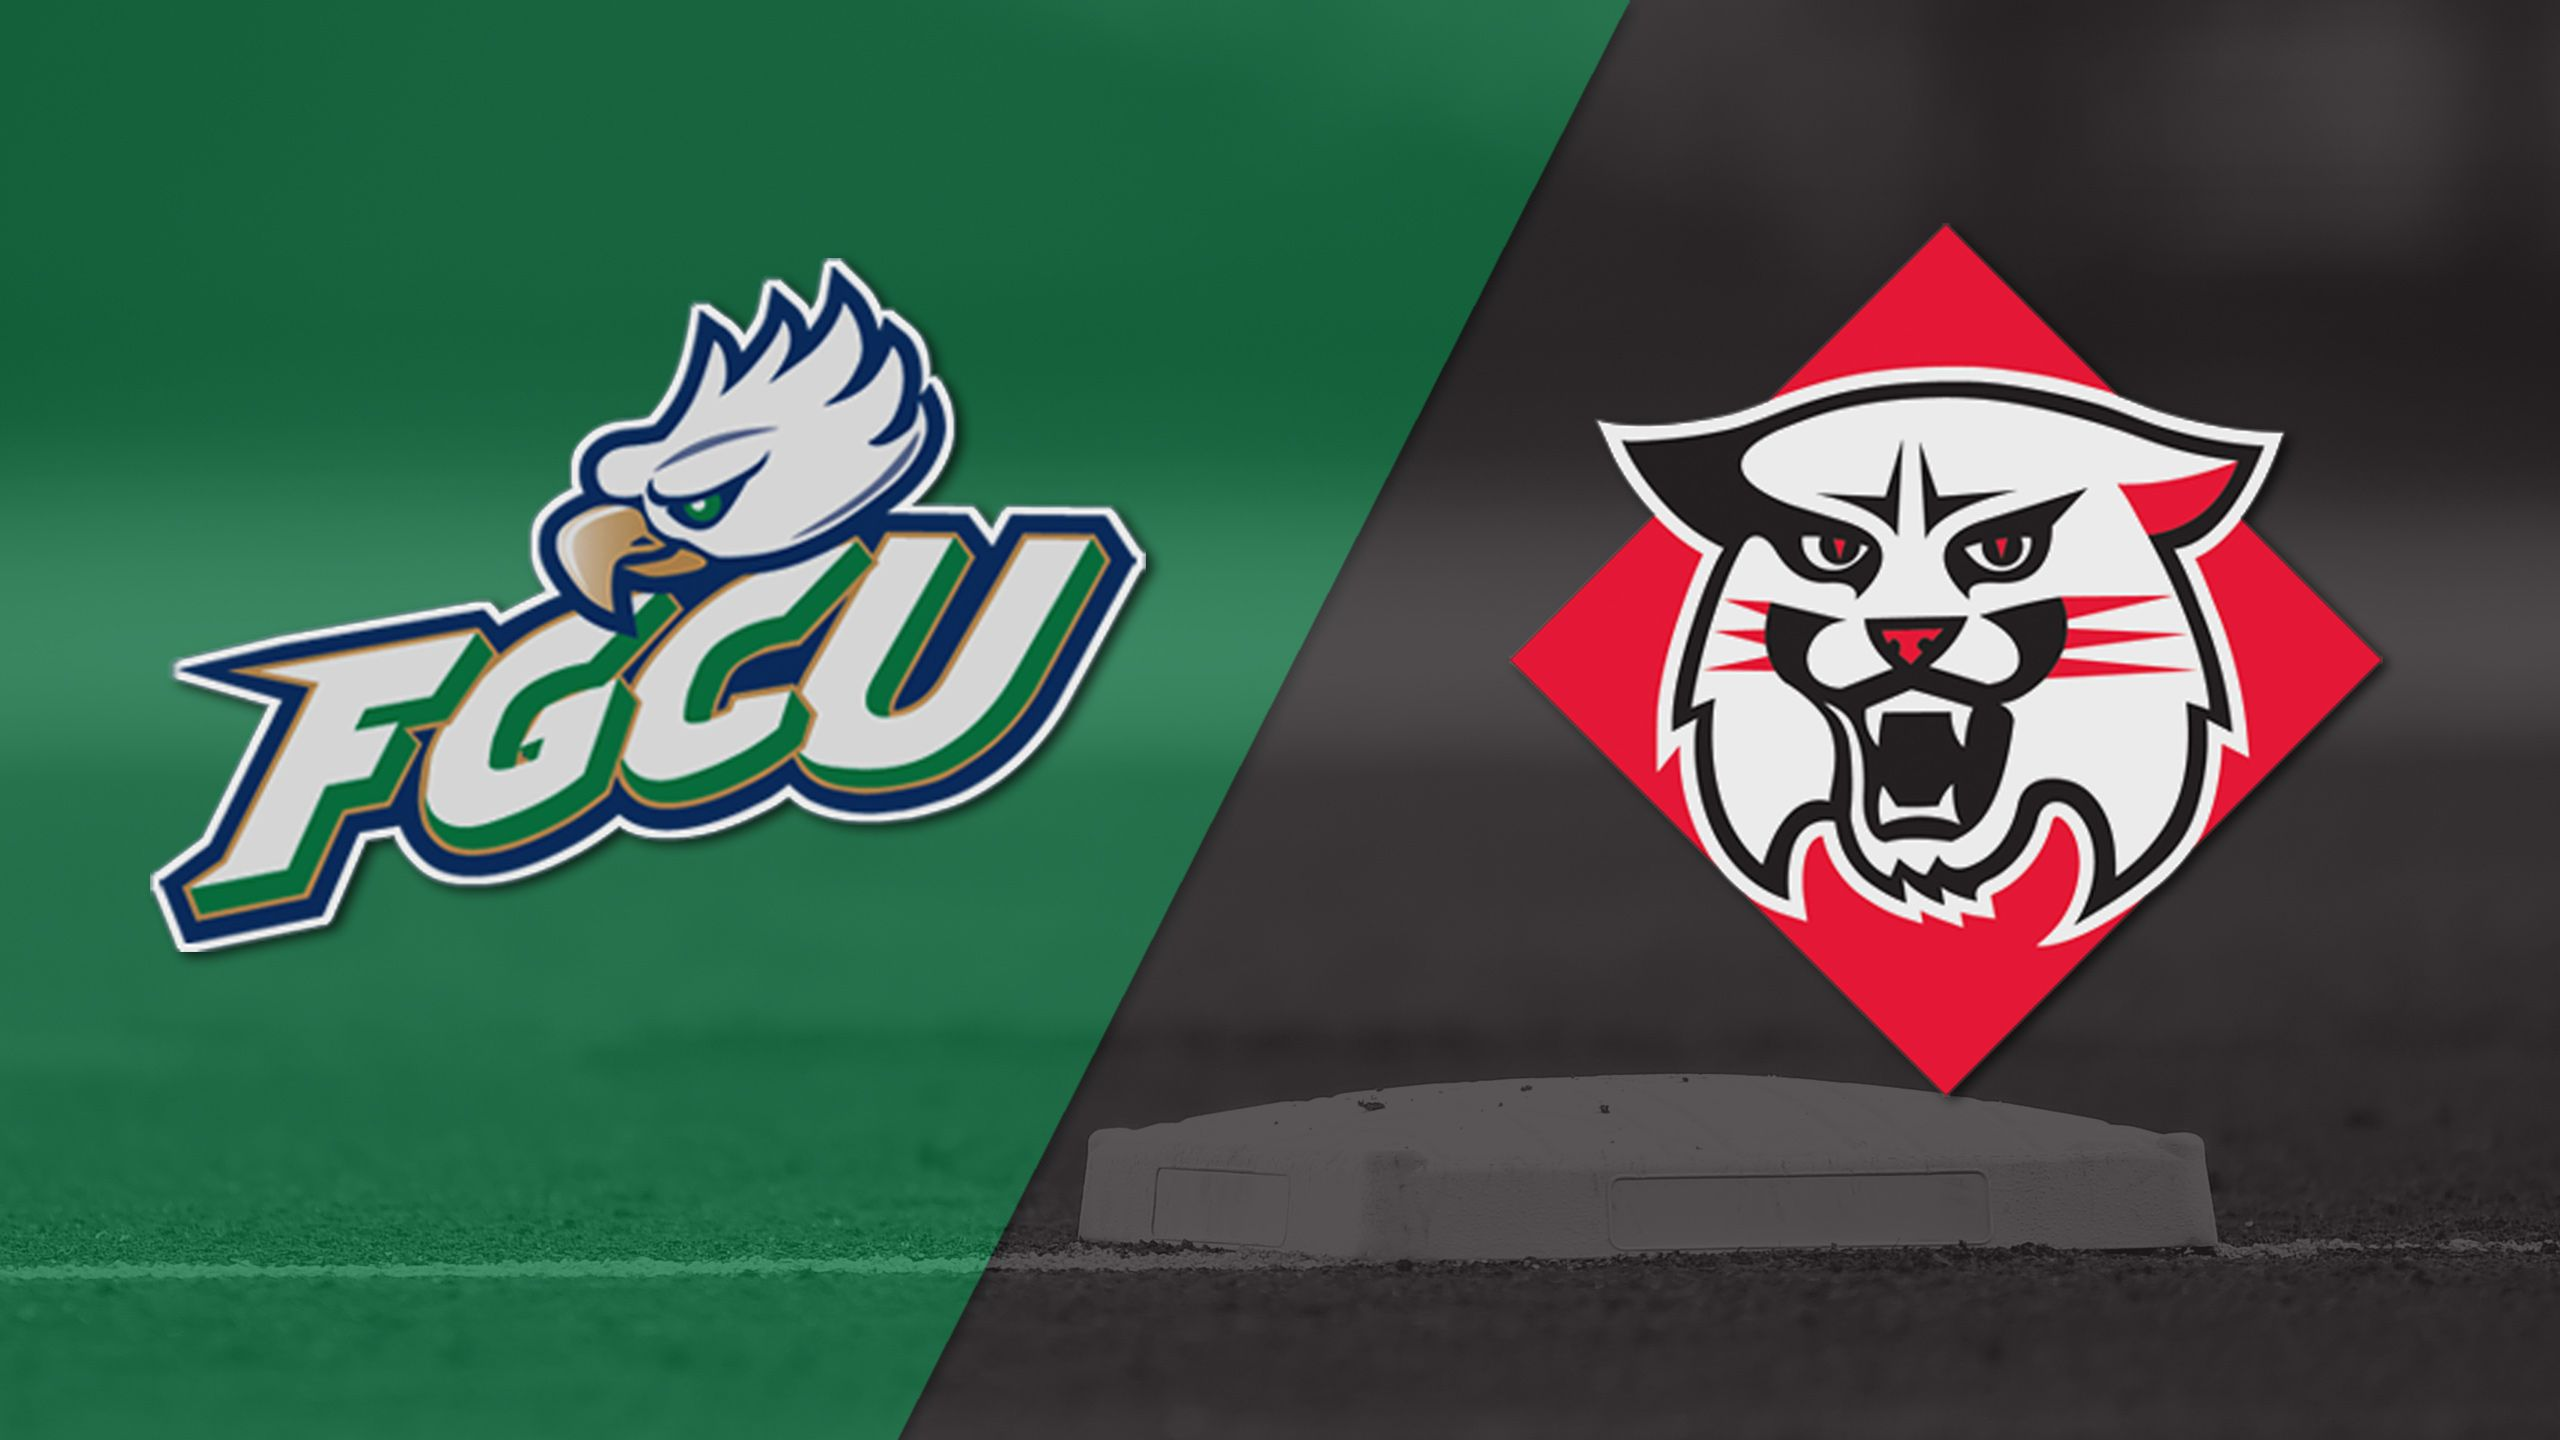 Florida Gulf Coast vs. Davidson (Site 9 / Game 4) (NCAA Baseball Championship)